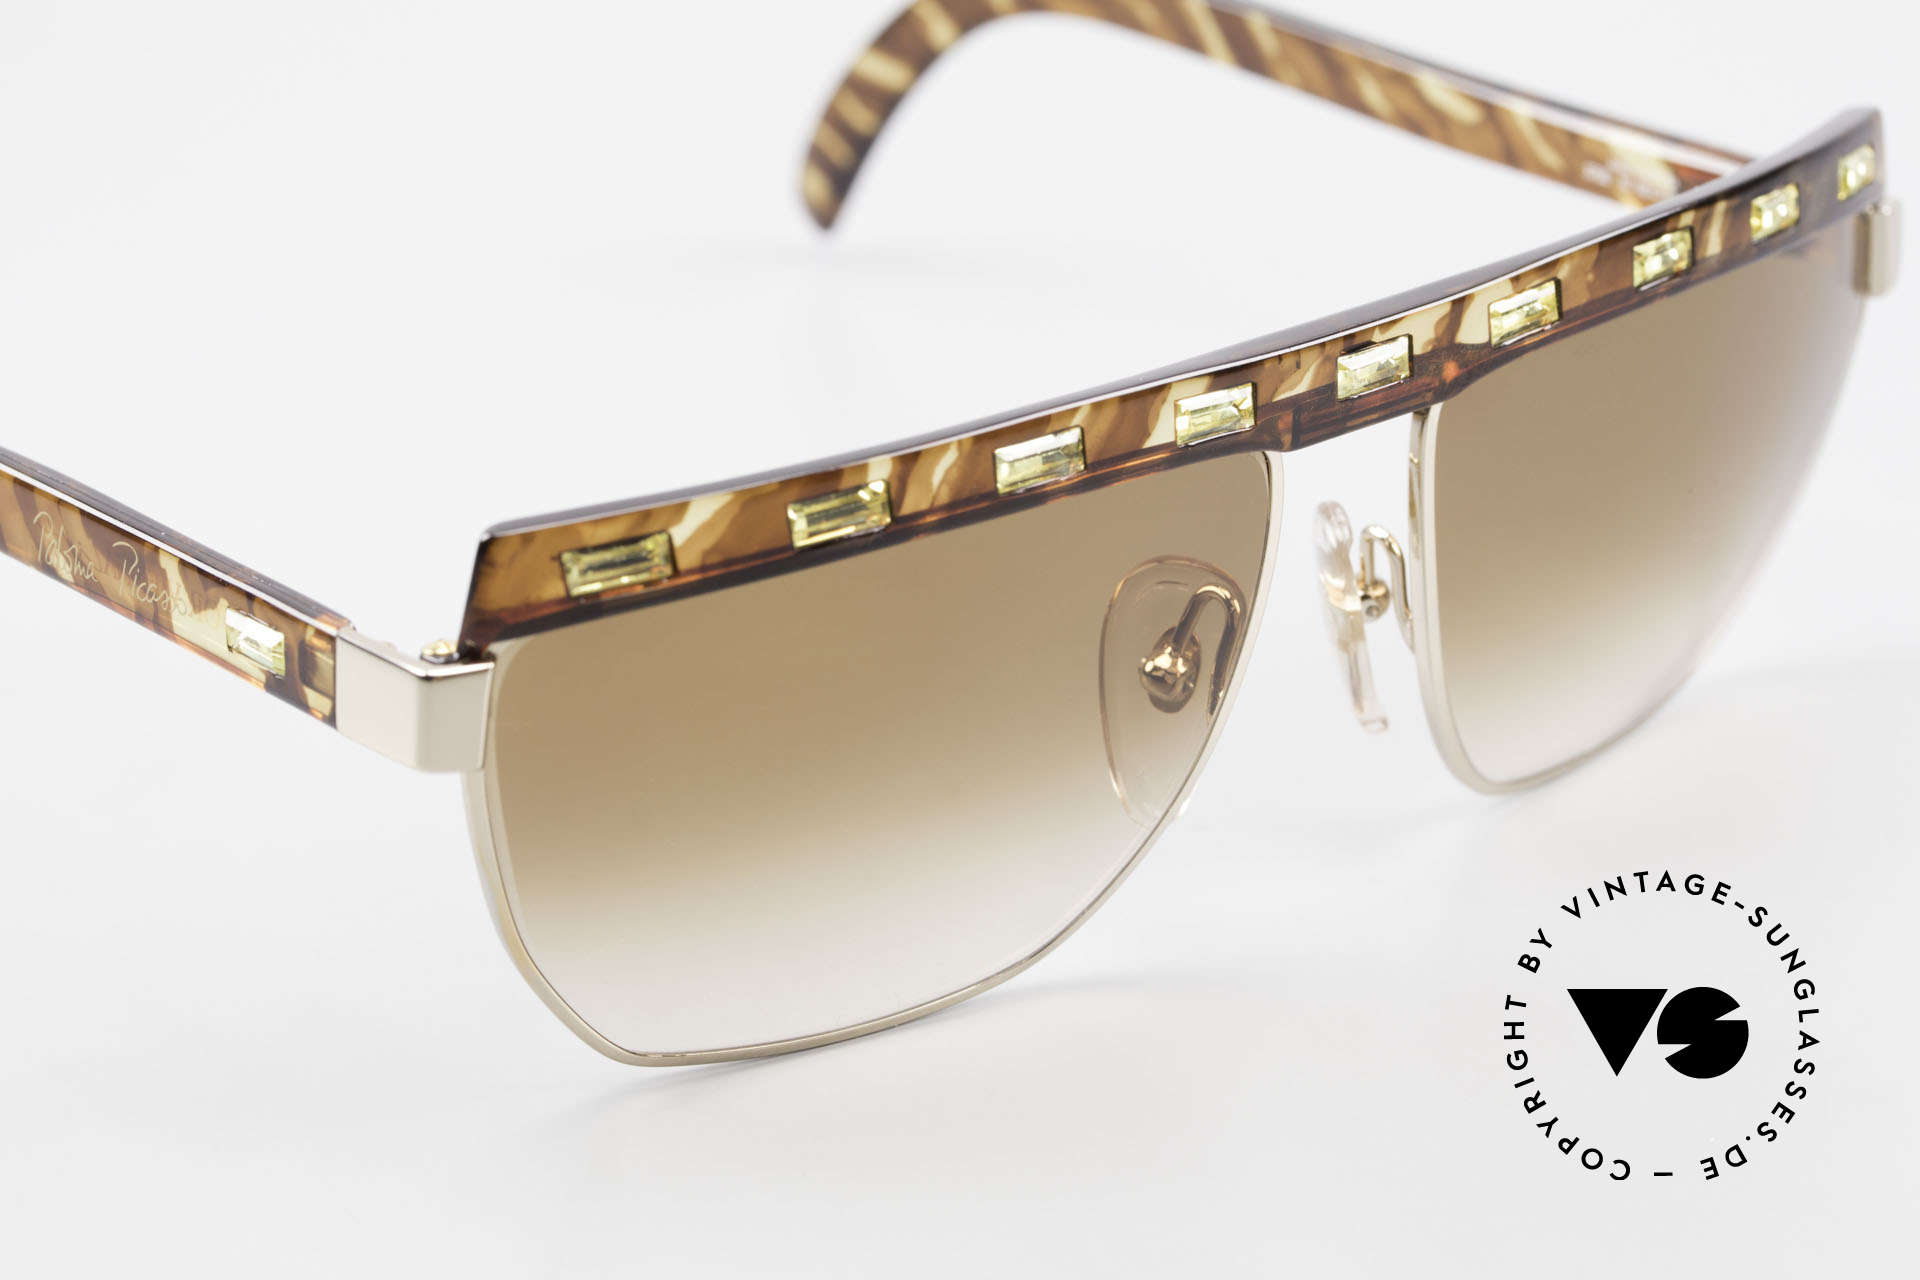 Paloma Picasso 3706 Ladies Gem Sunglasses 90's, fancy gimmick: the case can be used as wallet, too, Made for Women